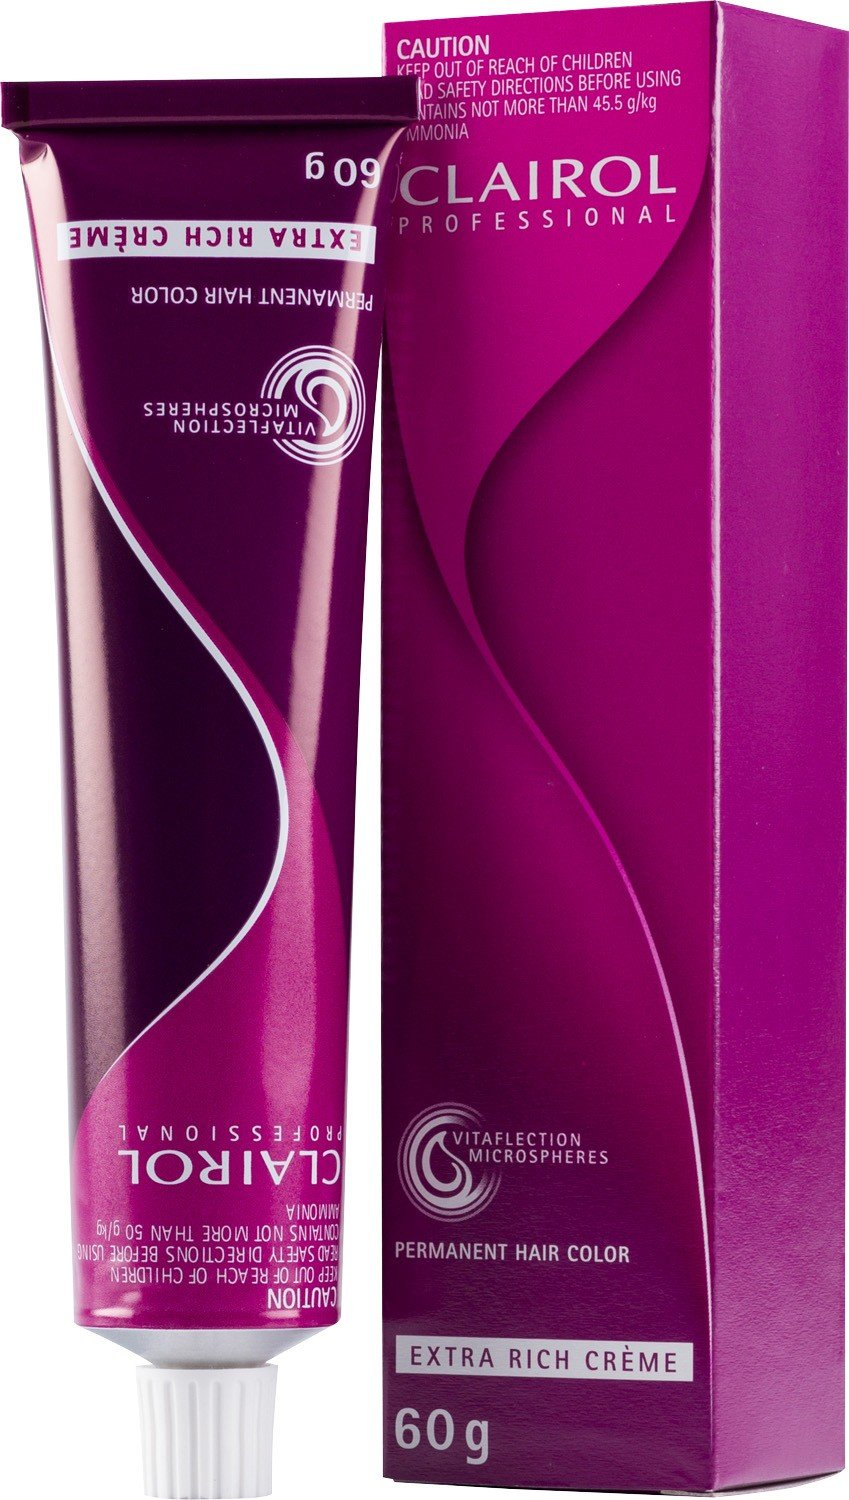 CLAIROL PERMANENT COLOUR 12.89 - 60g